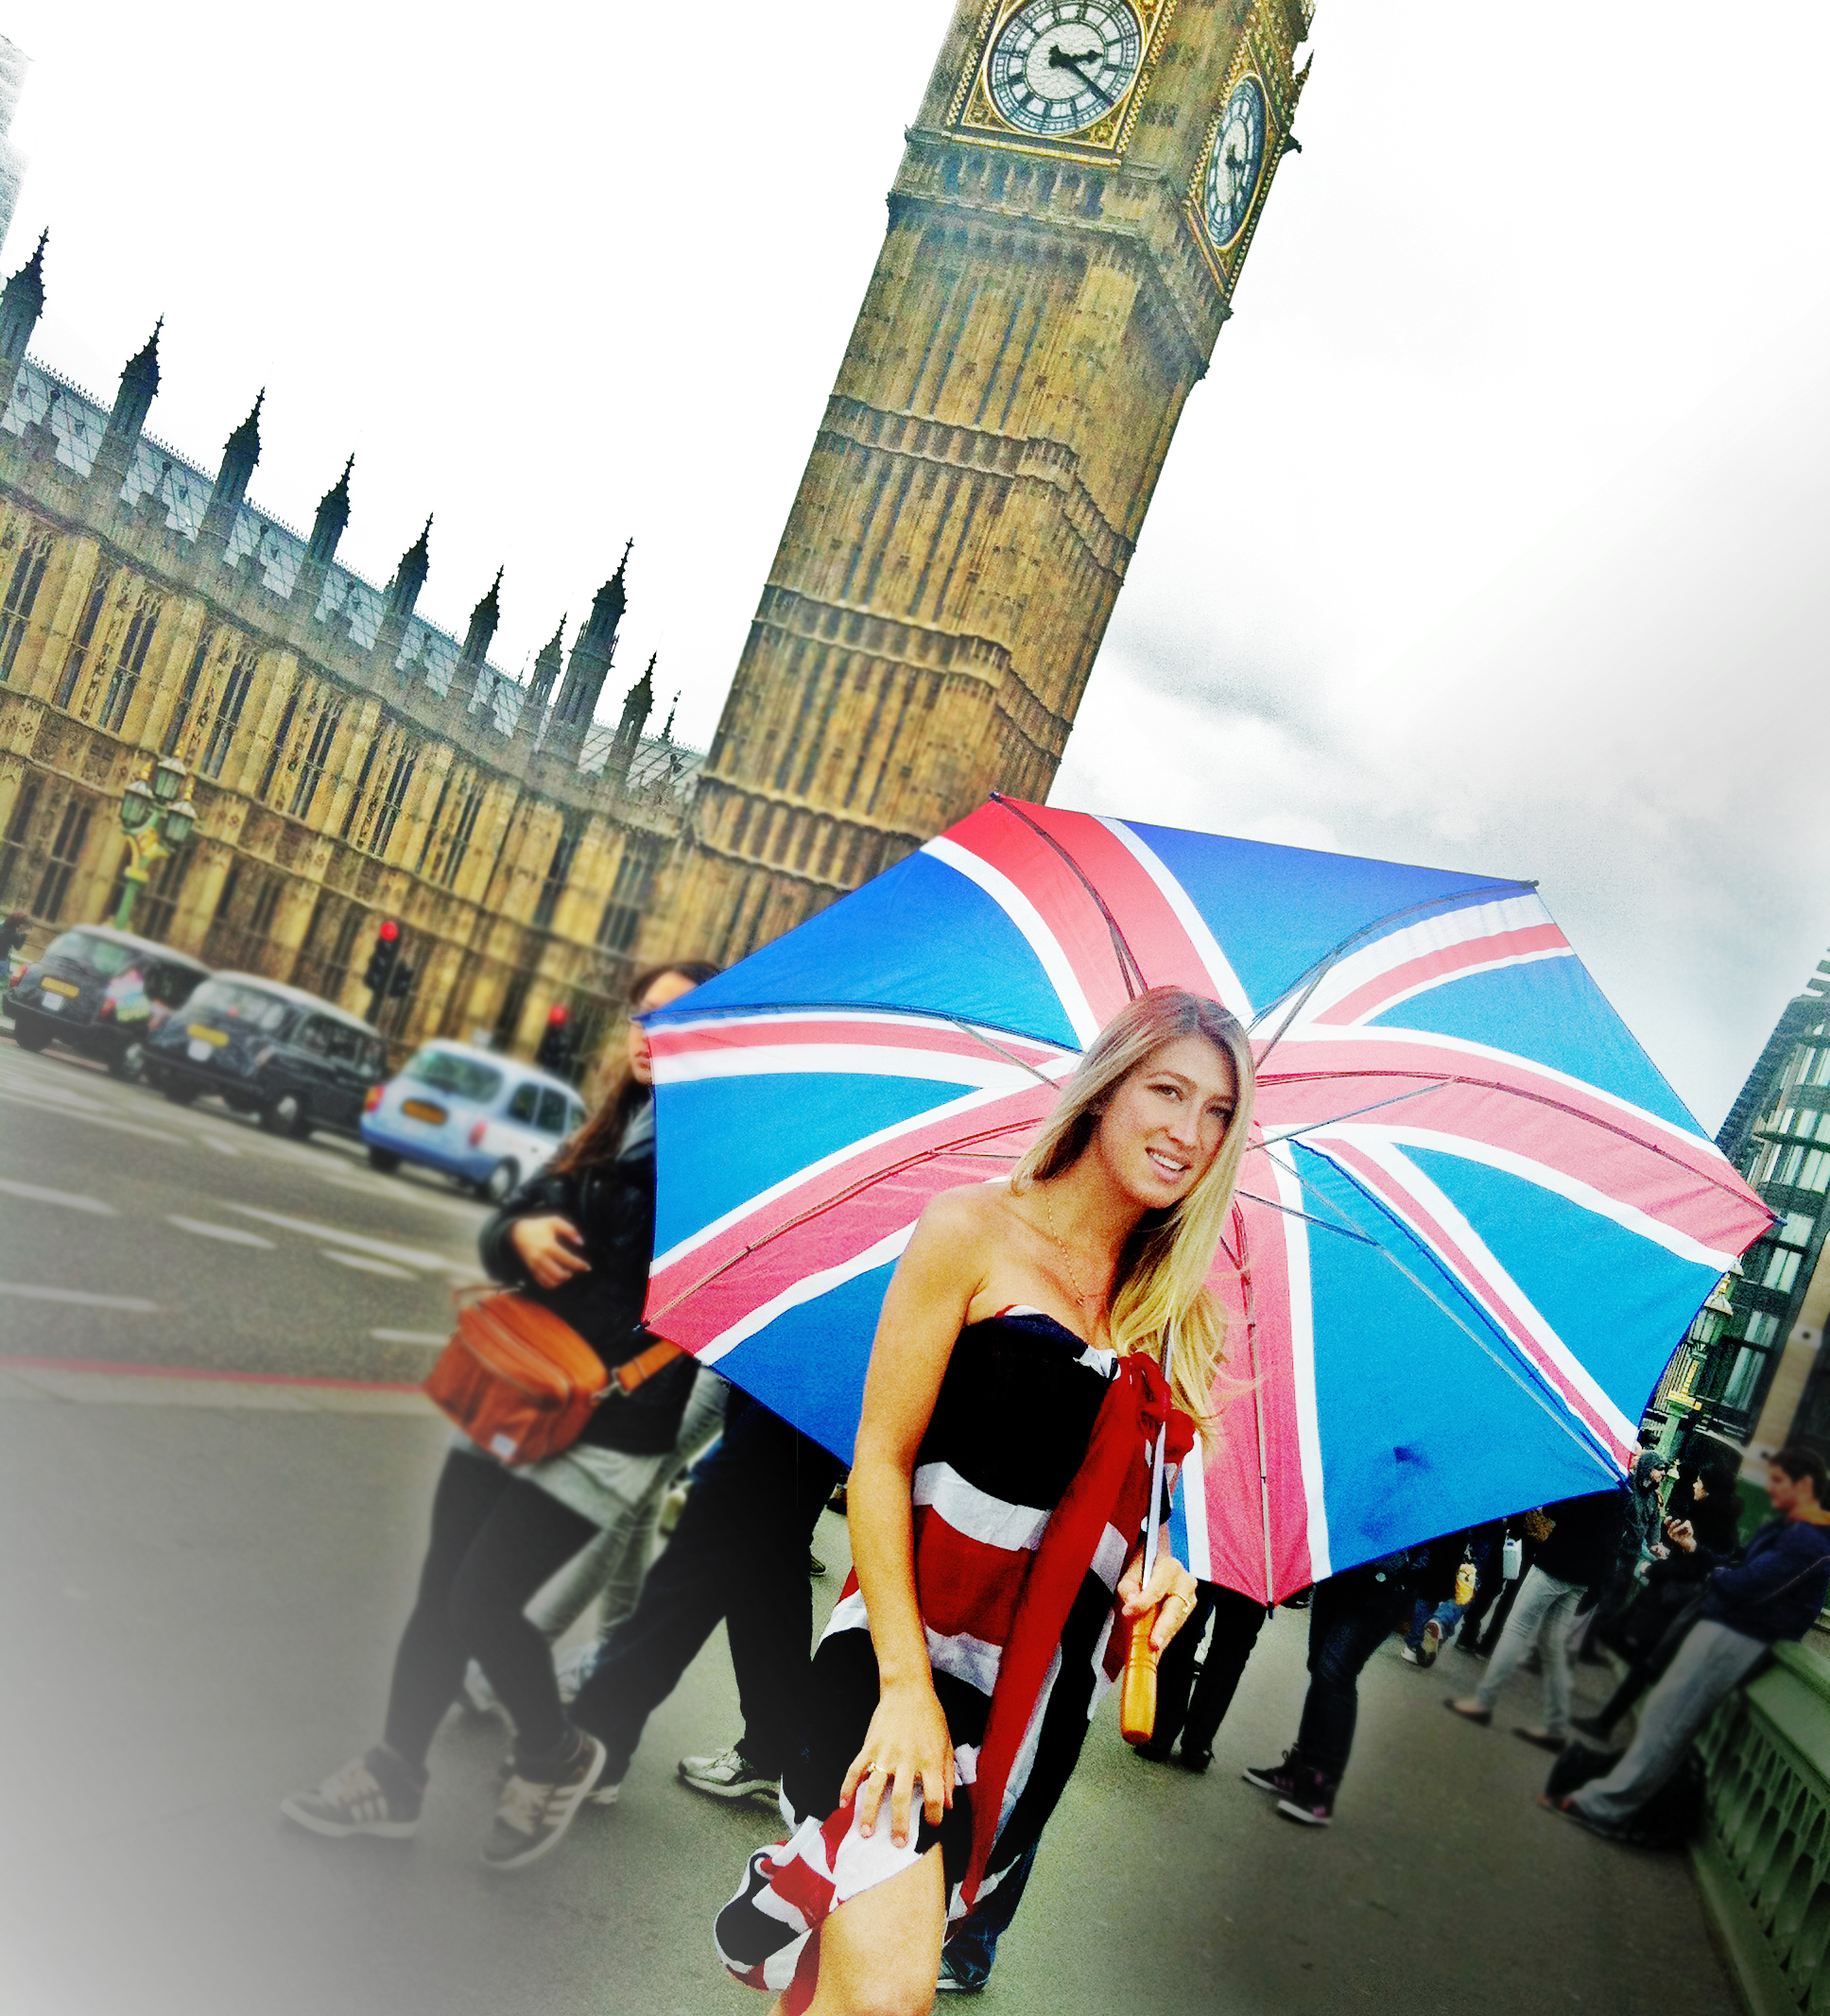 Trying to make wearing a British flag and holding a dorky British umbrella sexy but it's not really working! LOL